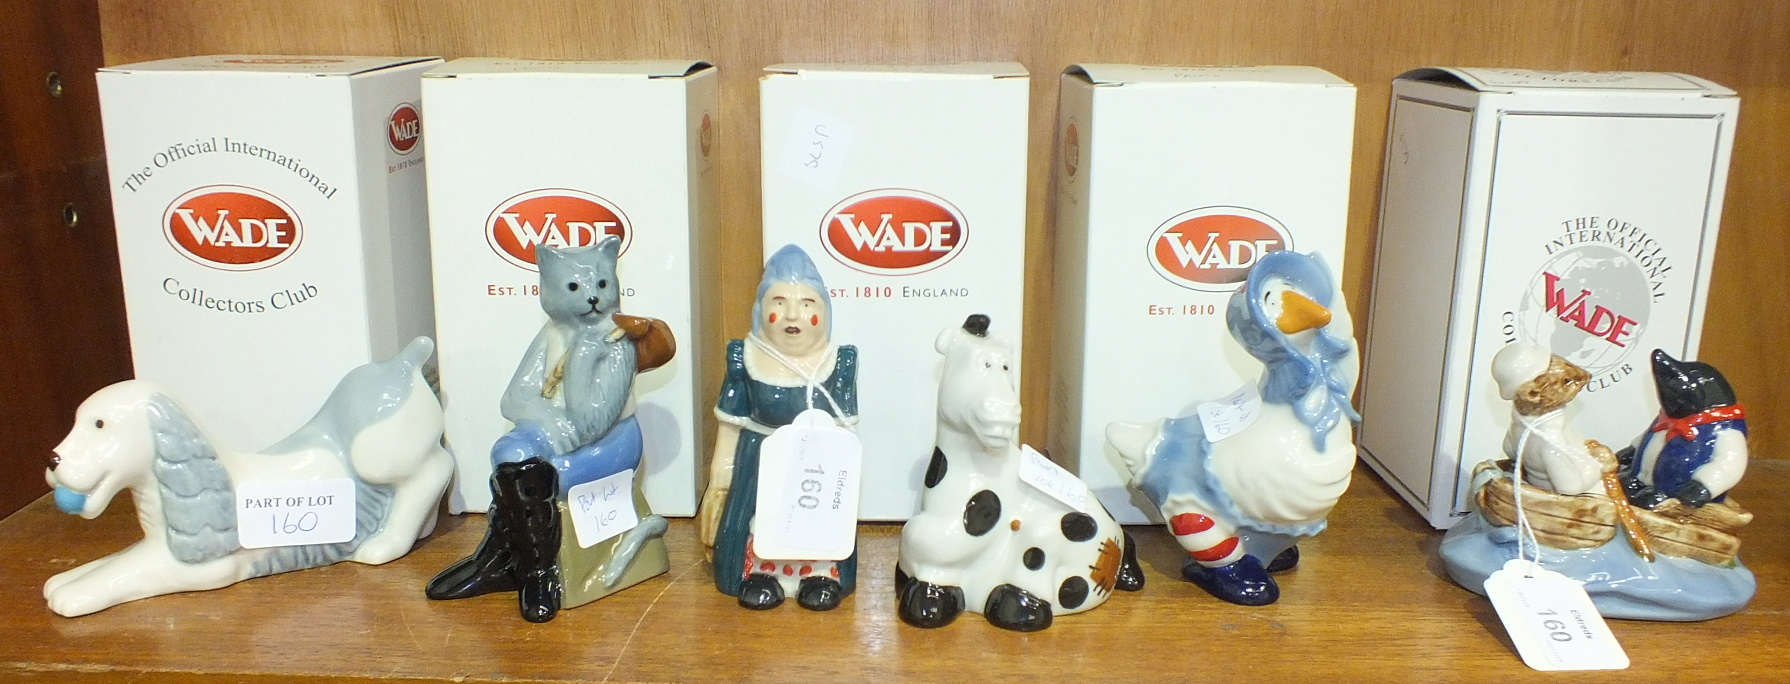 Lot 160 - A Wade International Collectors Club 'The Wind in the Willows Special' figure group, 8.5cm high